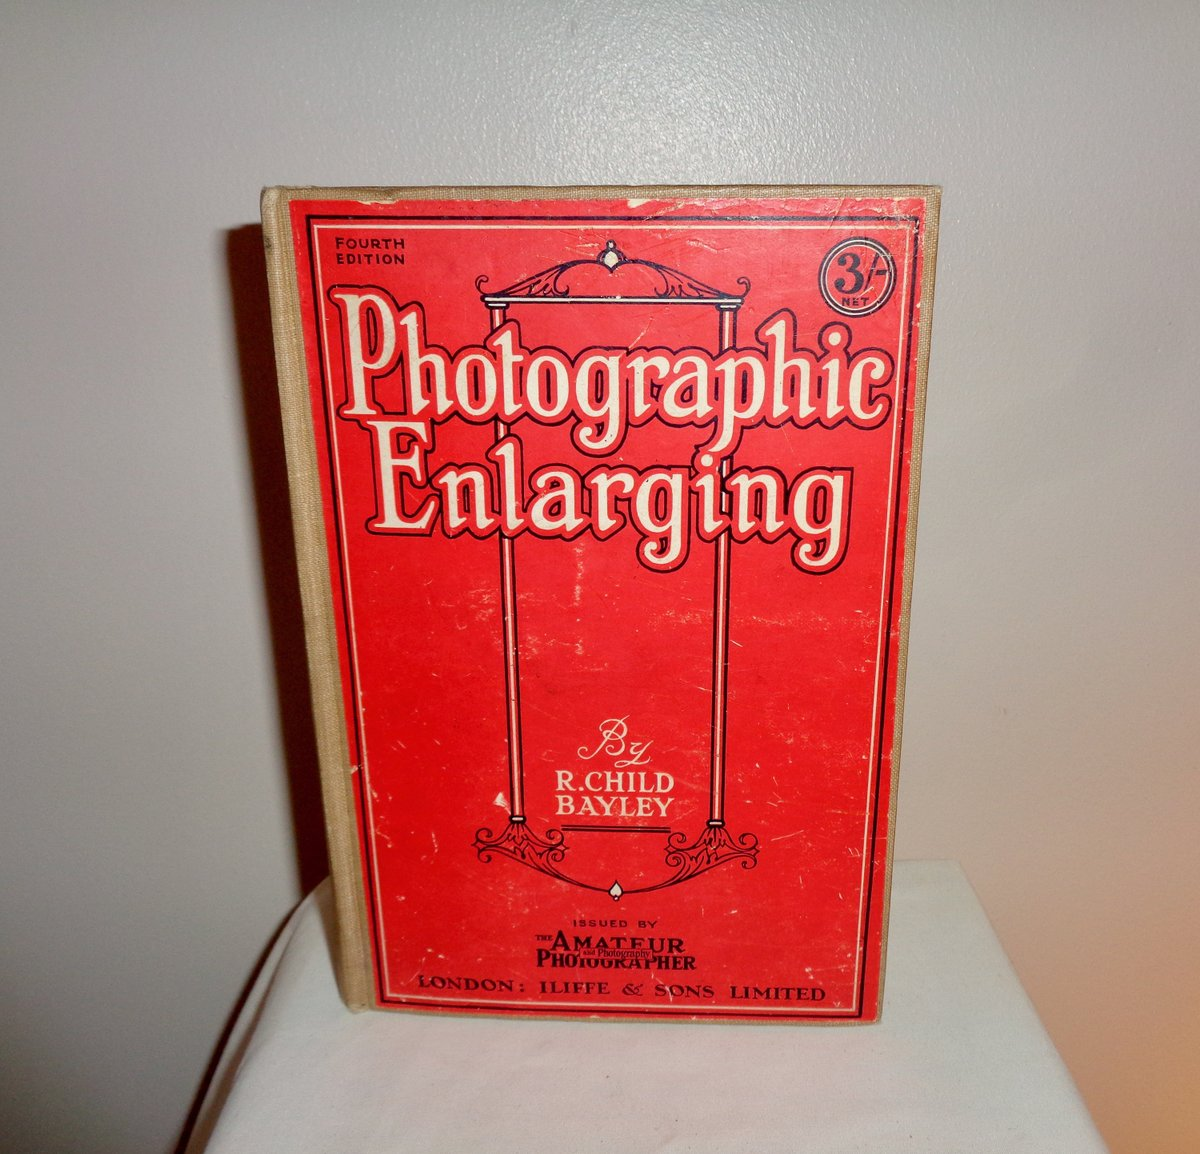 """Vintage """"Photographic Enlarging Issued By The Amateur Photographer and Photography."""" By R Child Bayley. Published By Iliffe & Sons Limited.  #supplies #vintagebook #science #photography #photographic #history #camera #development #reference"""